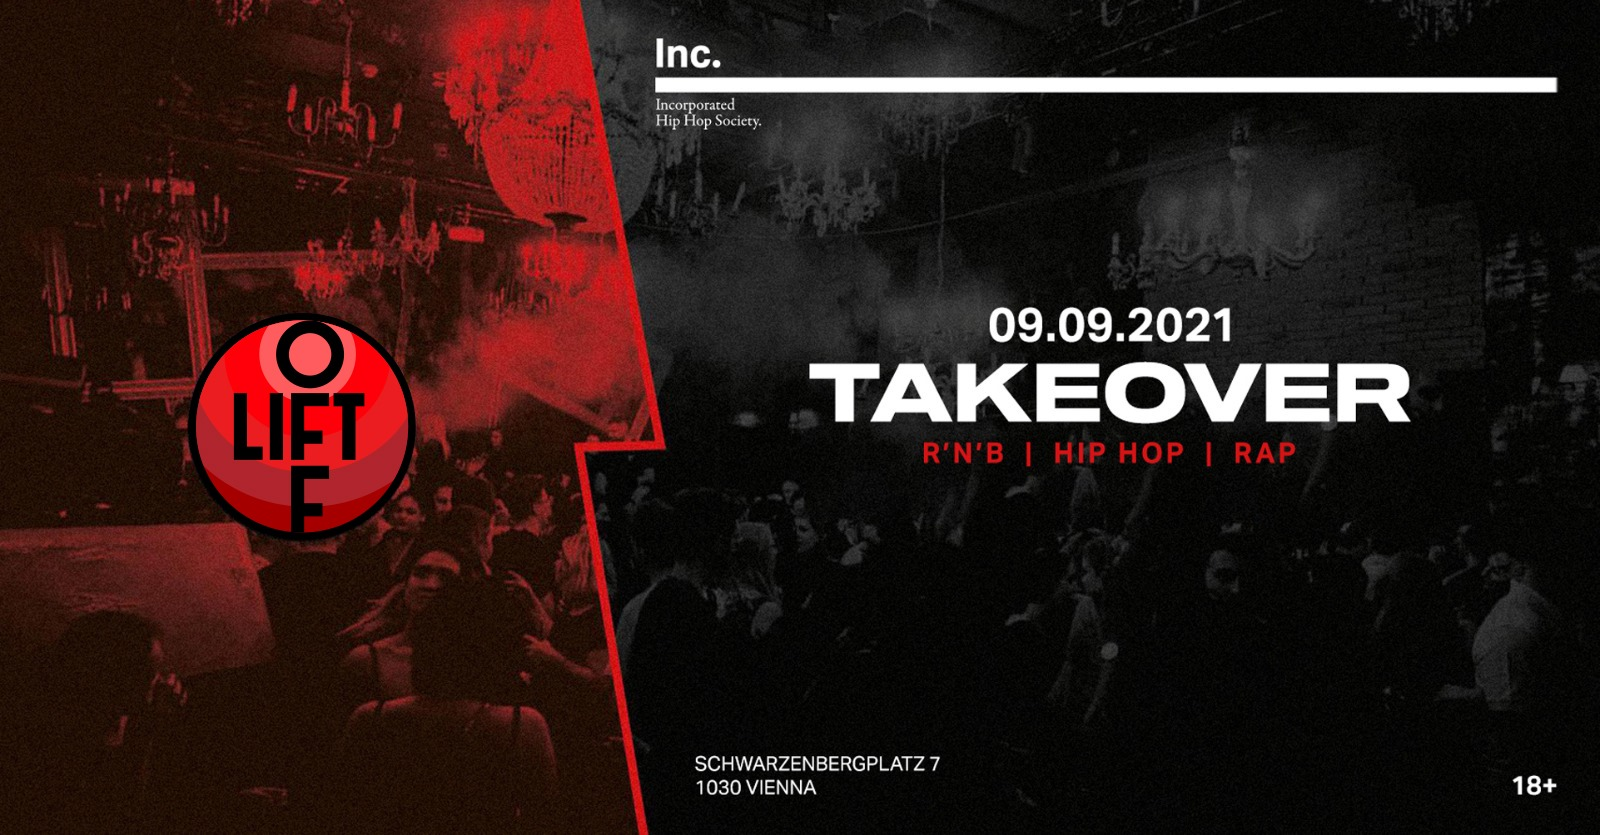 Events Wien: TAKEOVER ▌09.09.2021 ▌Inc.